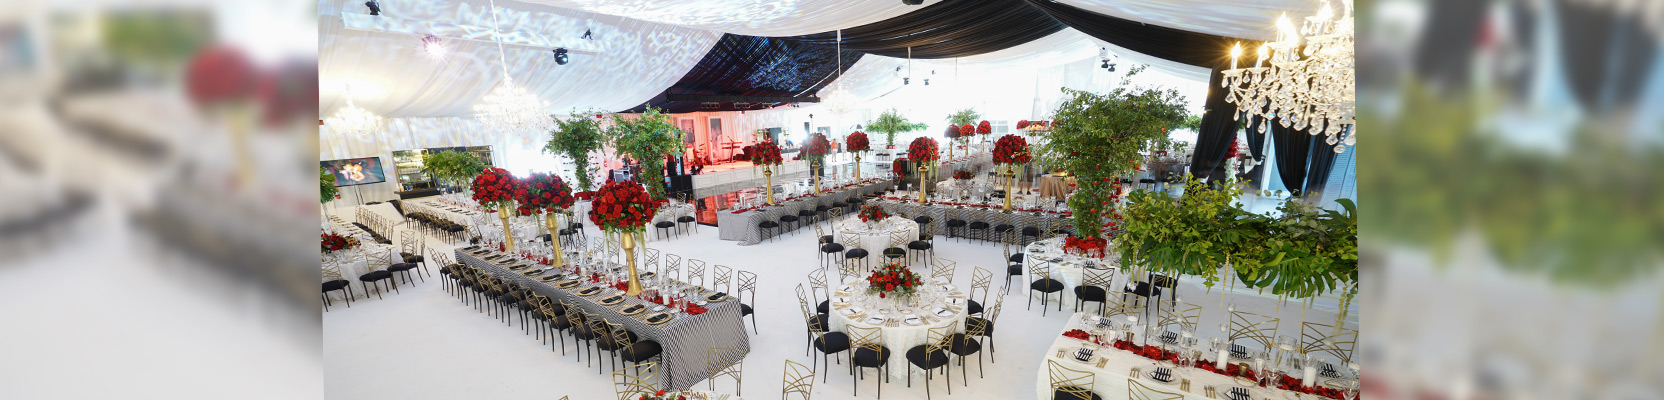 wedding tent flooring